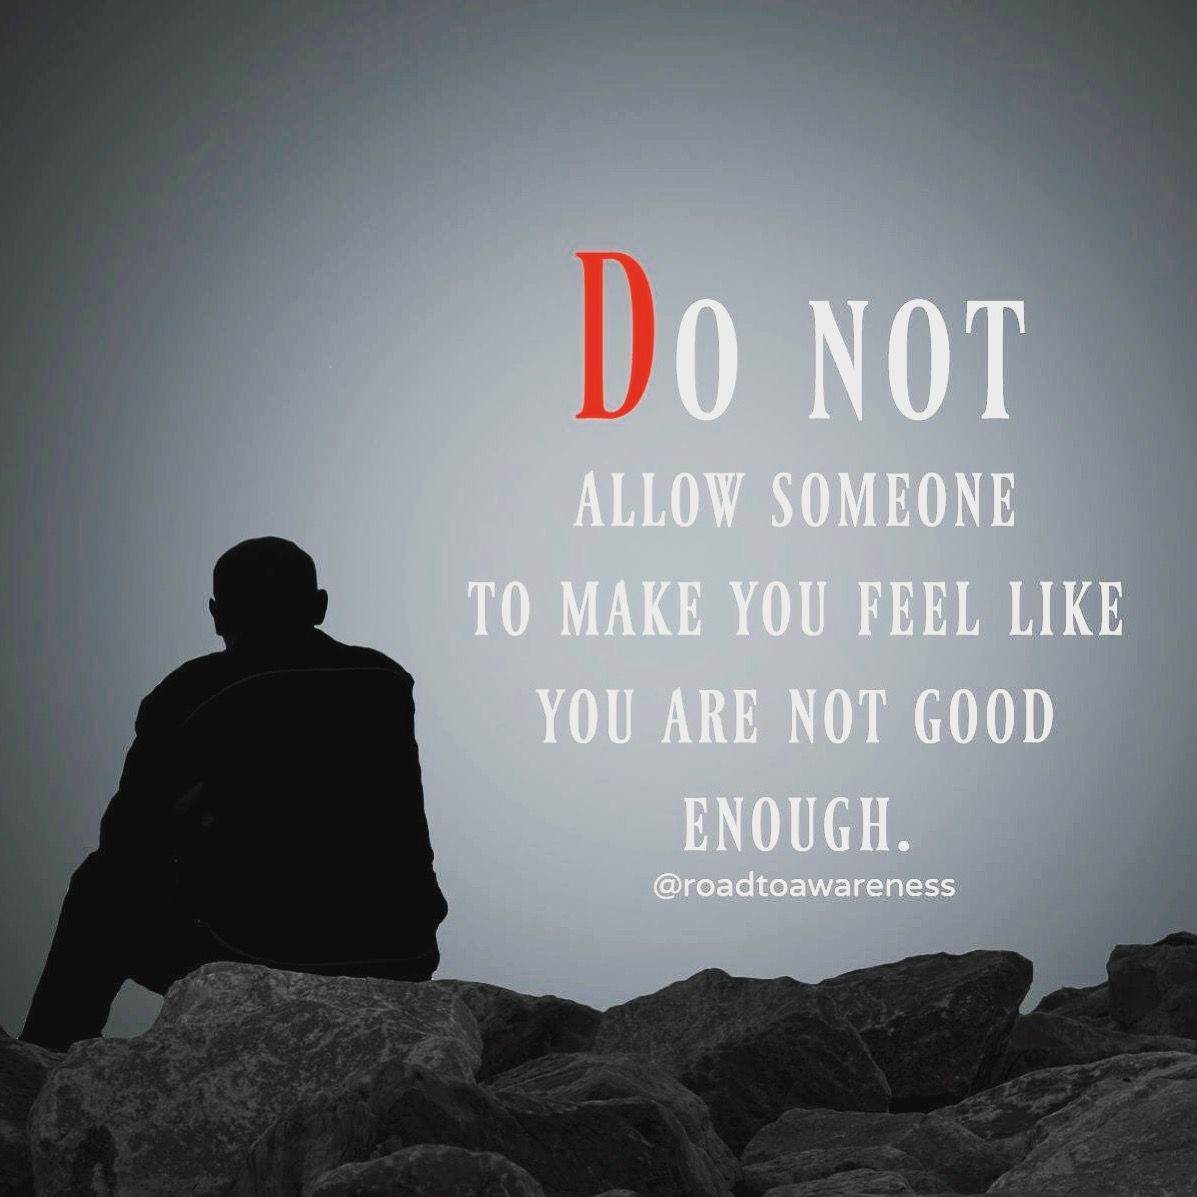 how to make yourself feel good enough for someone